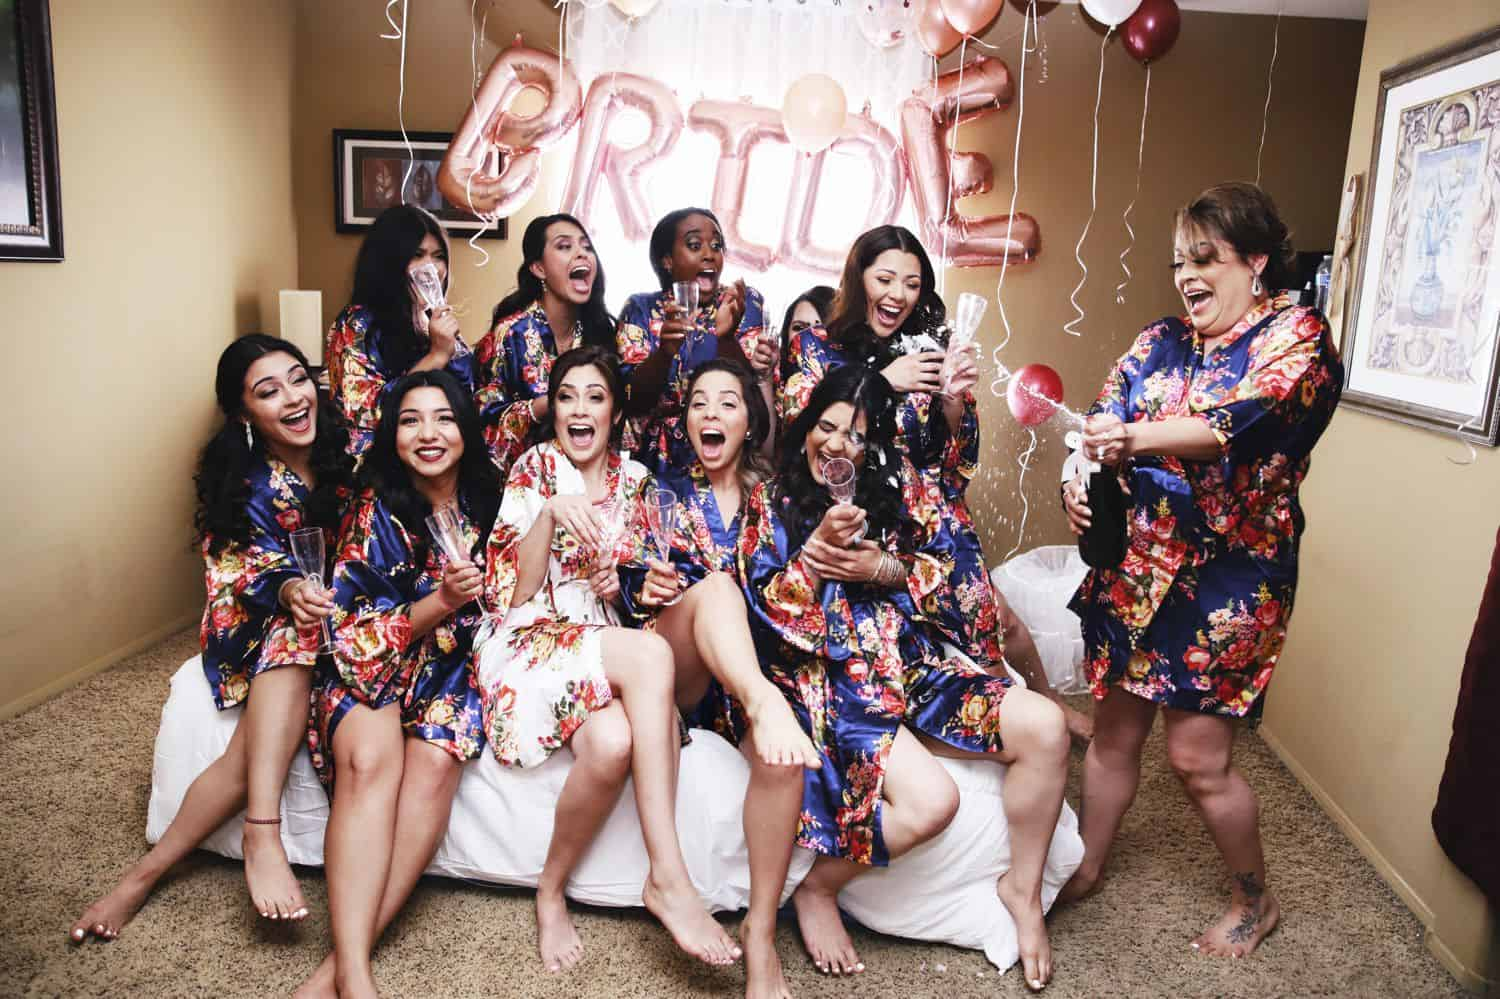 A group of bridesmaids shrieks as a champagne bottle explodes on them.